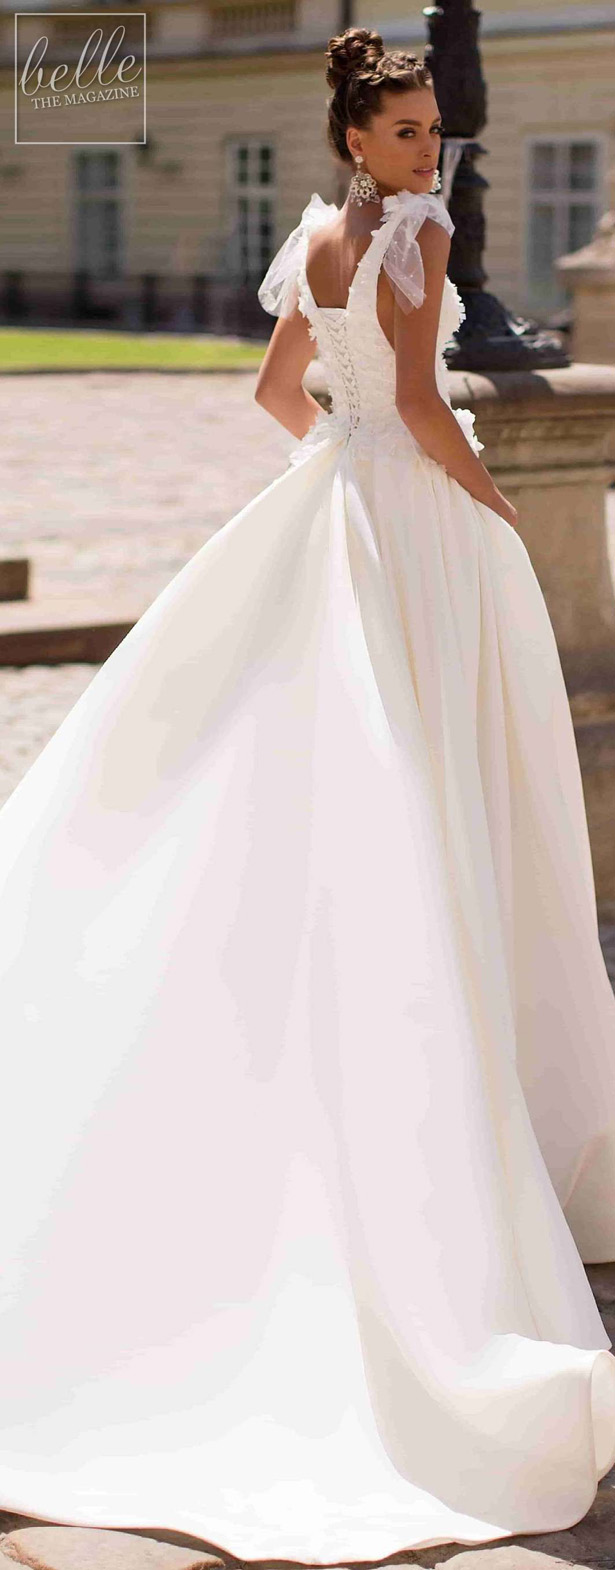 Liretta Wedding Dresses 2019 - Blue Mountain Bridal Collection - Kona 1